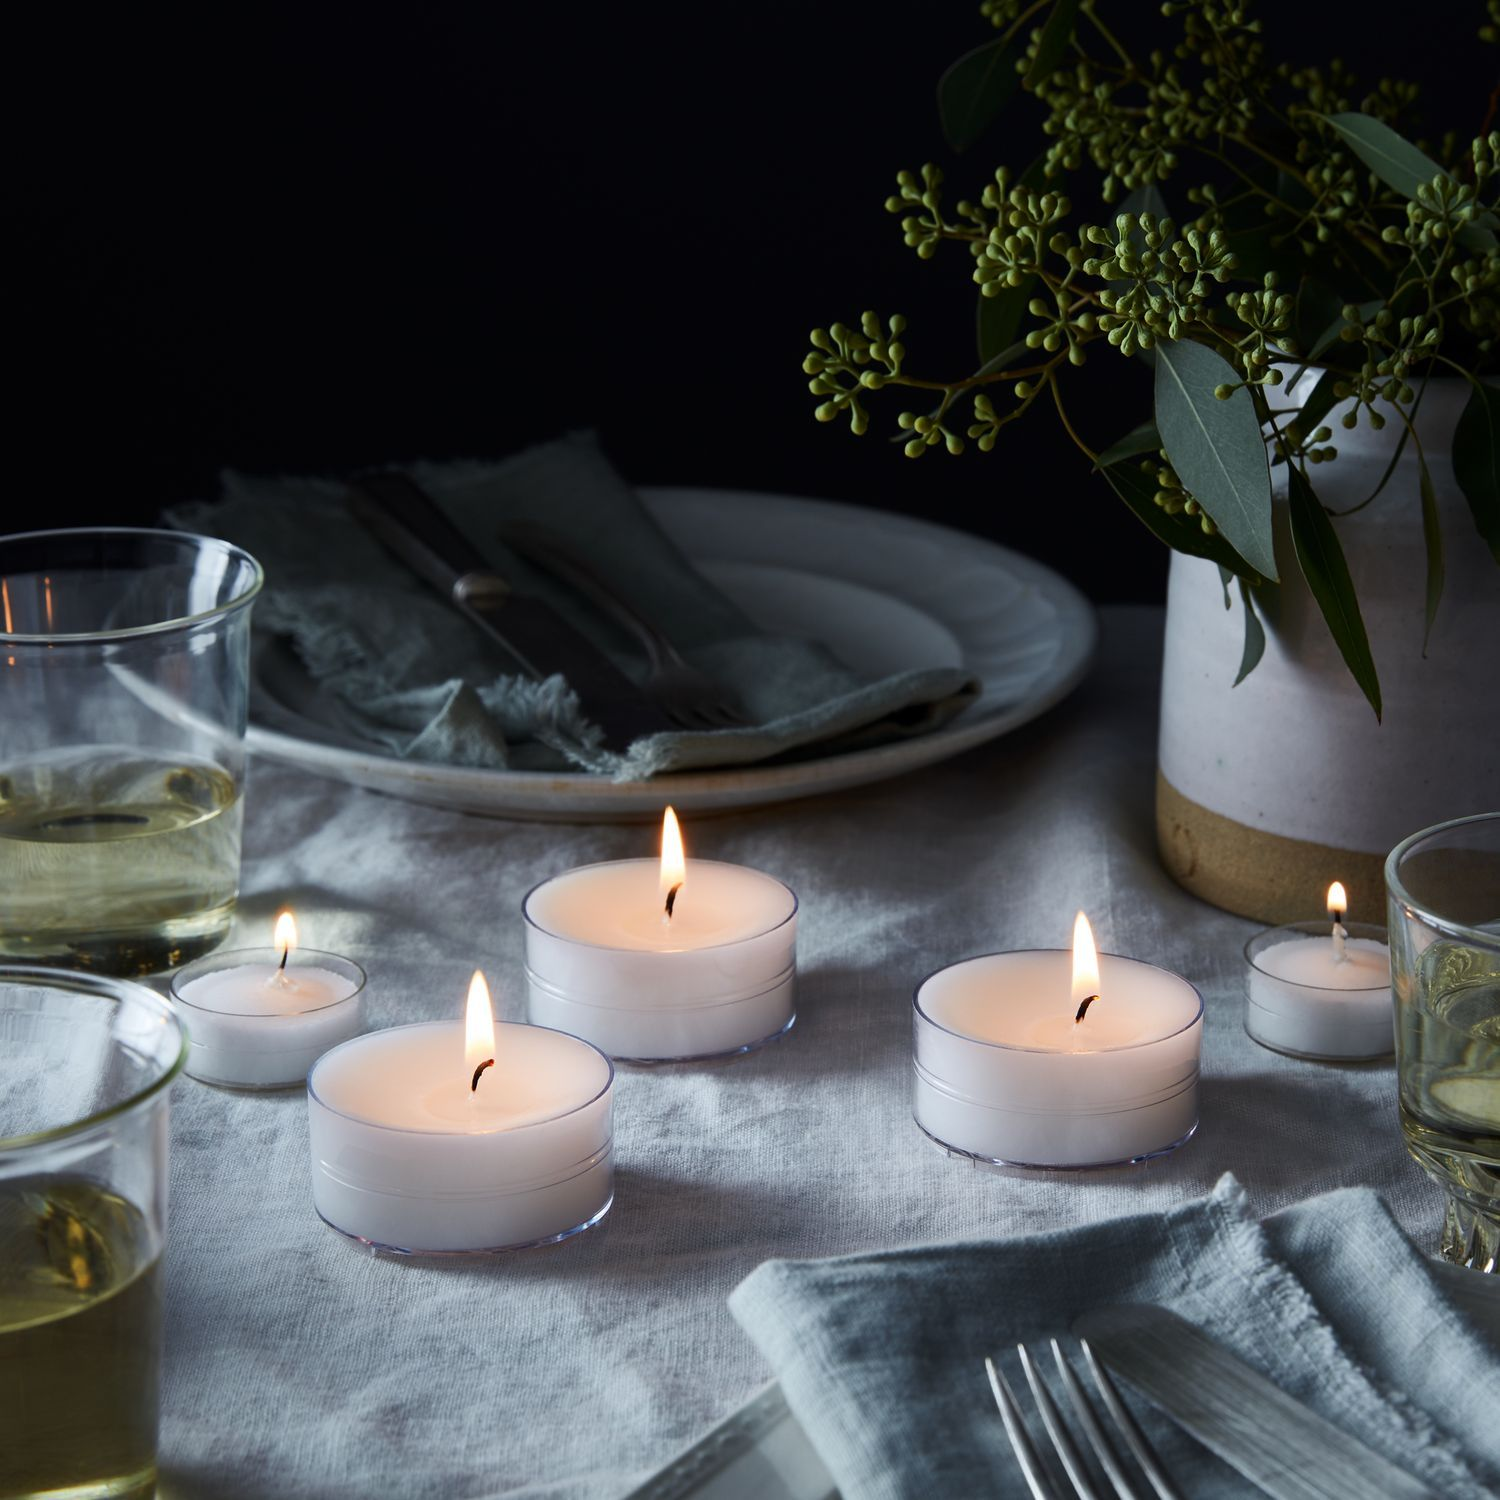 Oversized Candle Tea Lights On Food52 In 2020 Oversized Candles